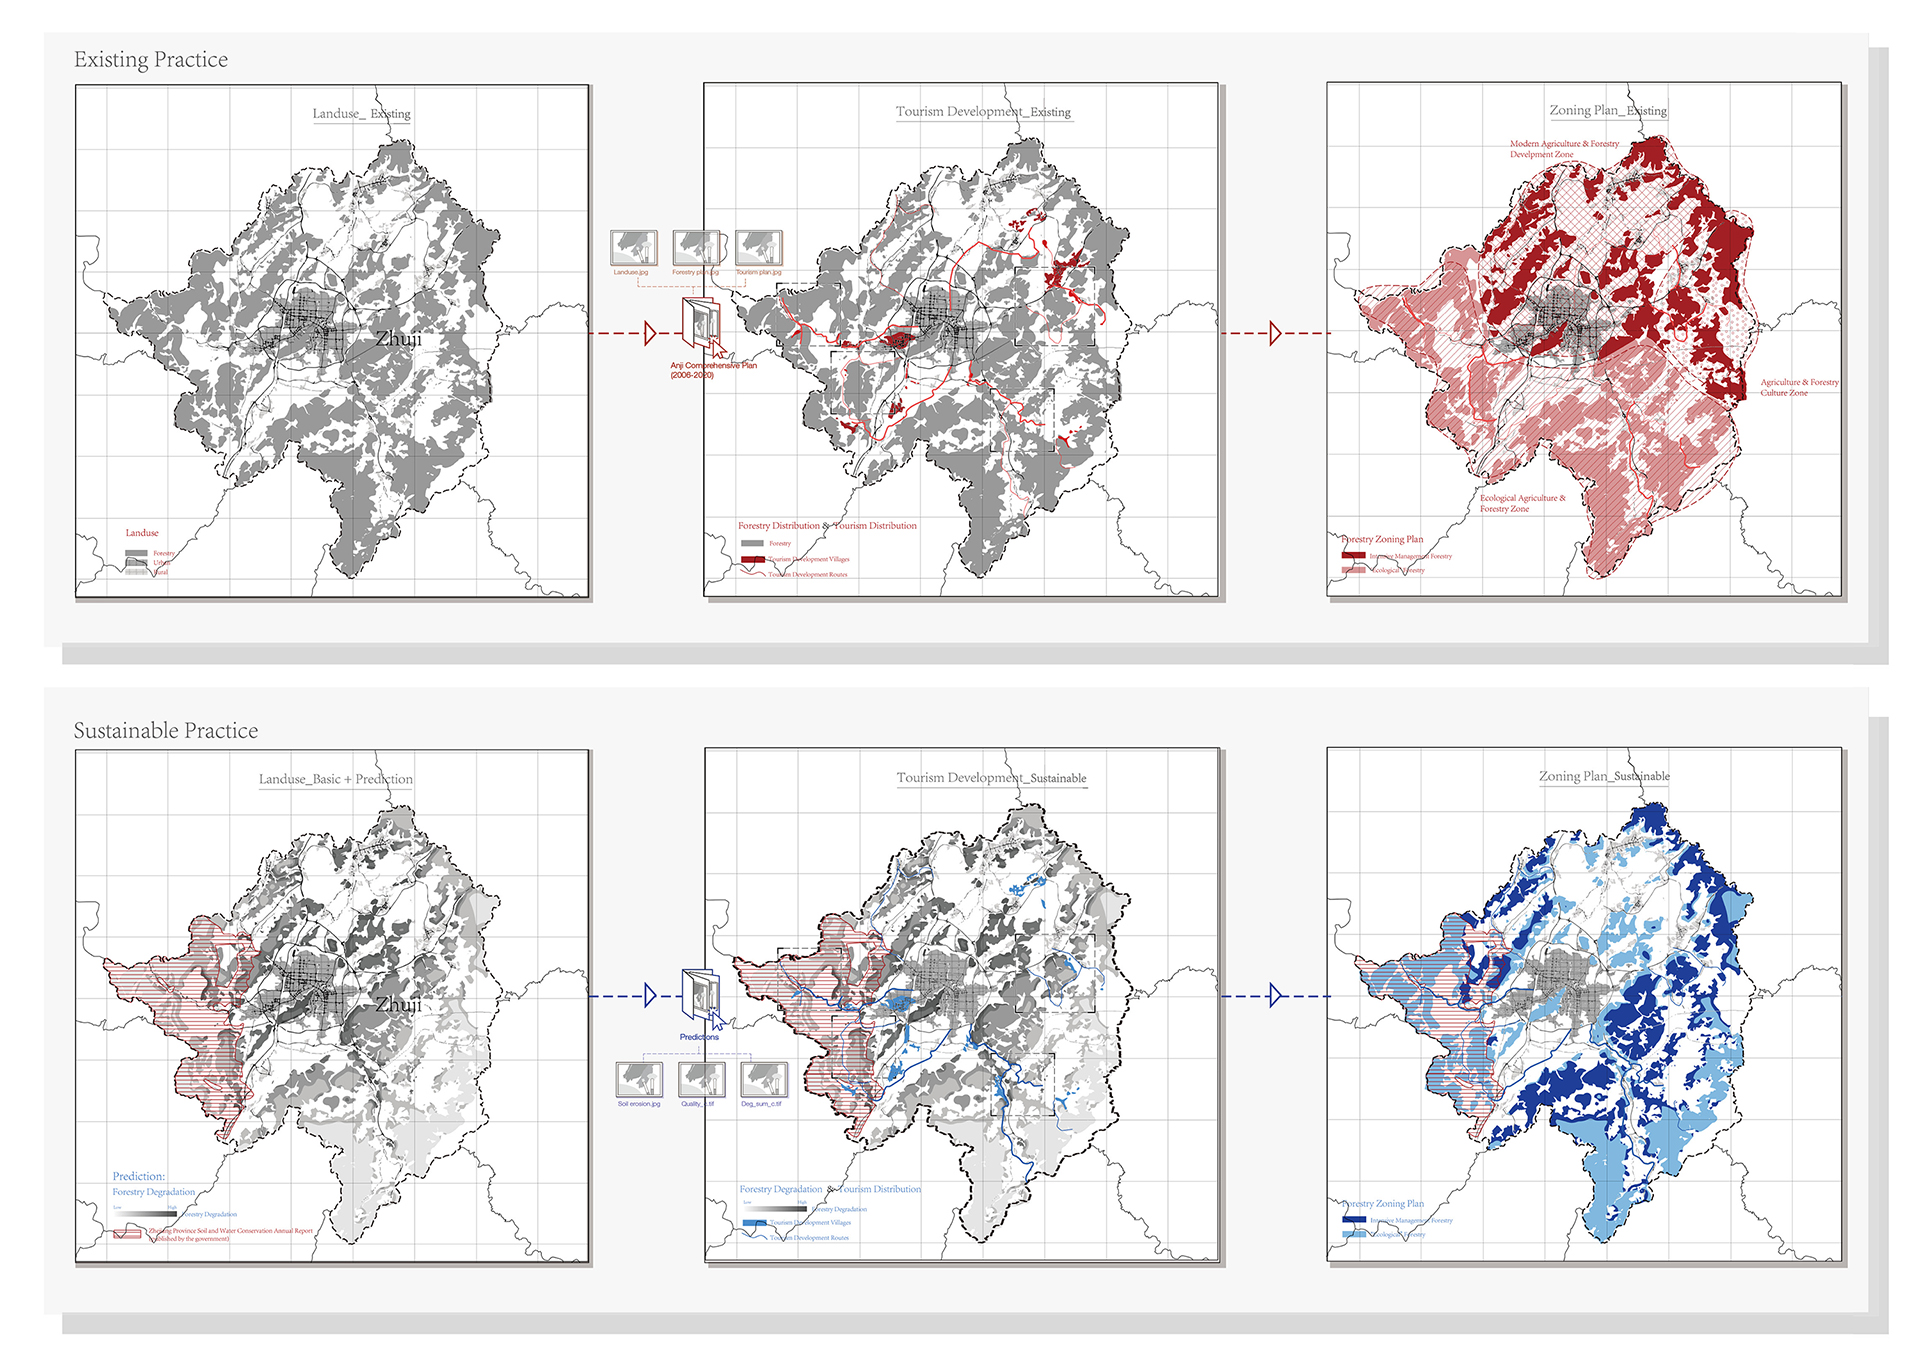 Enlarge Photo: The existing practice of Zhuji (red) mainly based on the land-use map and upper-level planning, while the sustainable practice (blue) should be more proactive by predicting before planning. By WANG Xuting Julie.